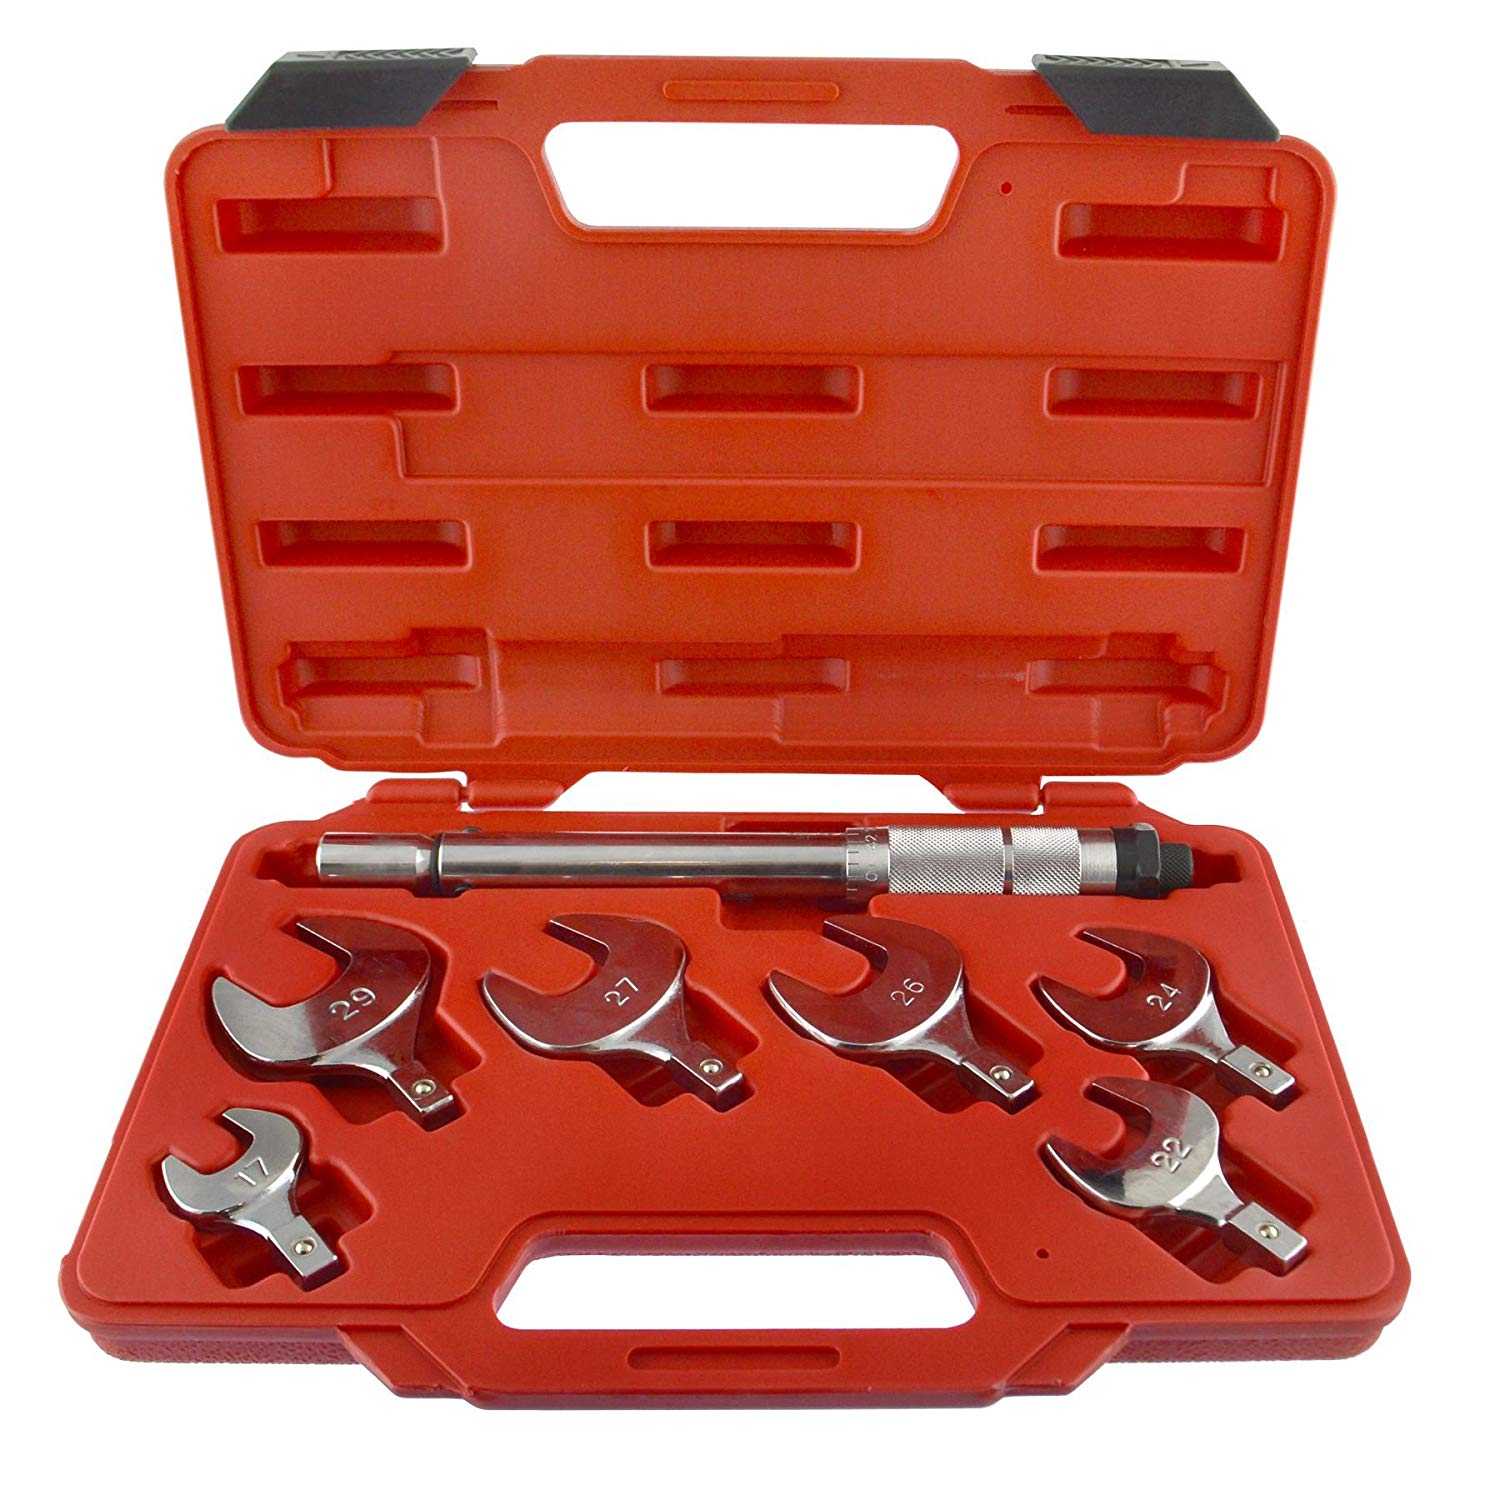 Interchangeable Torque Wrench Spanner Heads With Torque Control 17 - 29mm